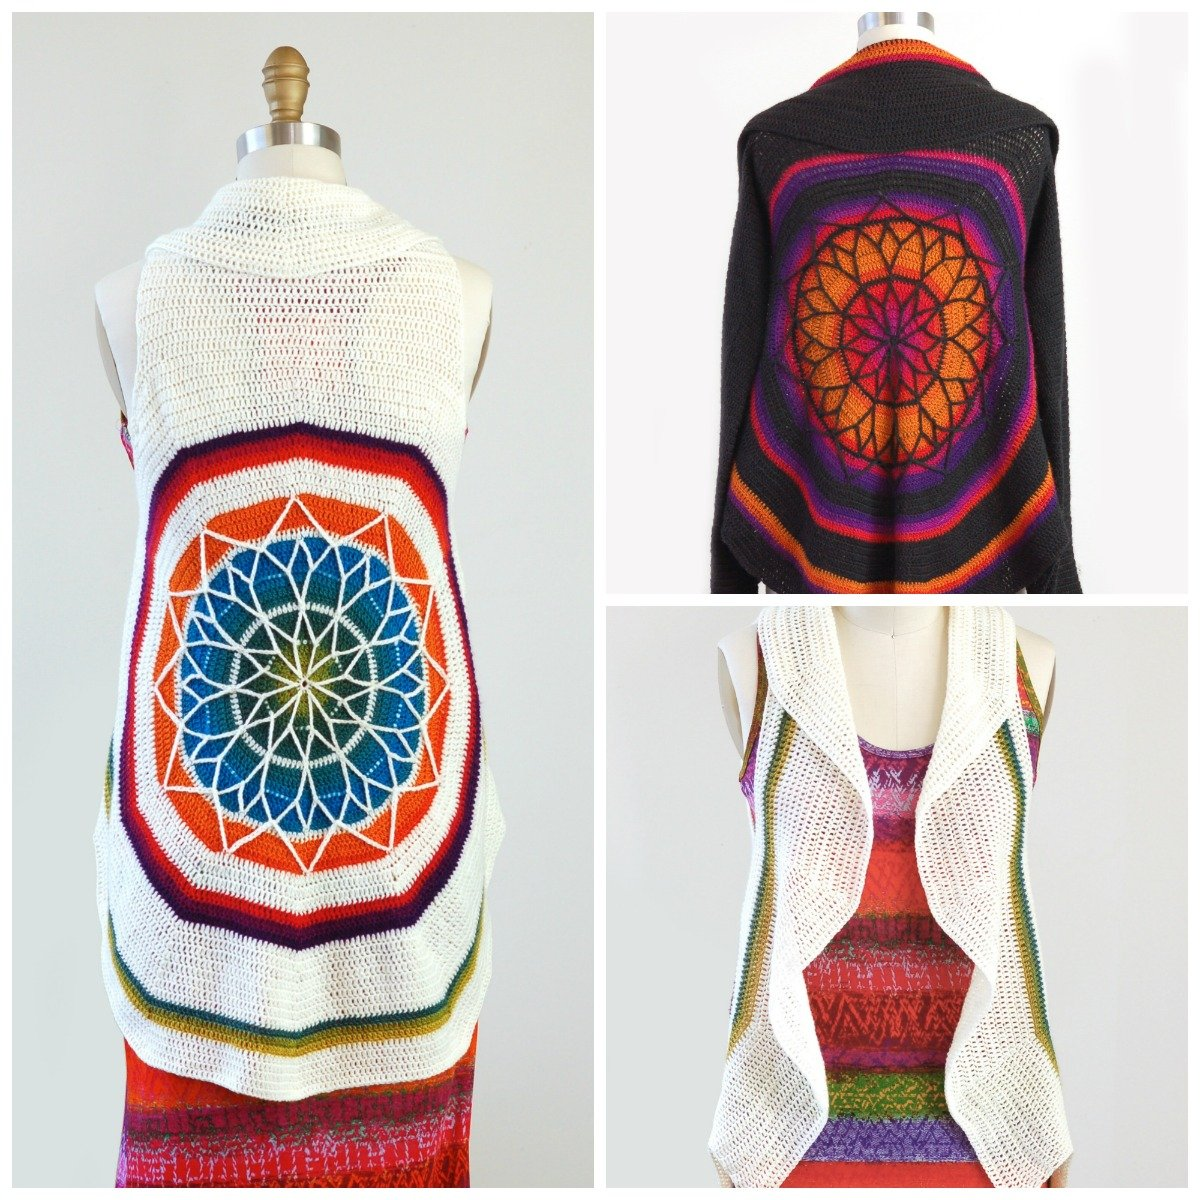 Stained Glass Mandala Vest - PDF Download